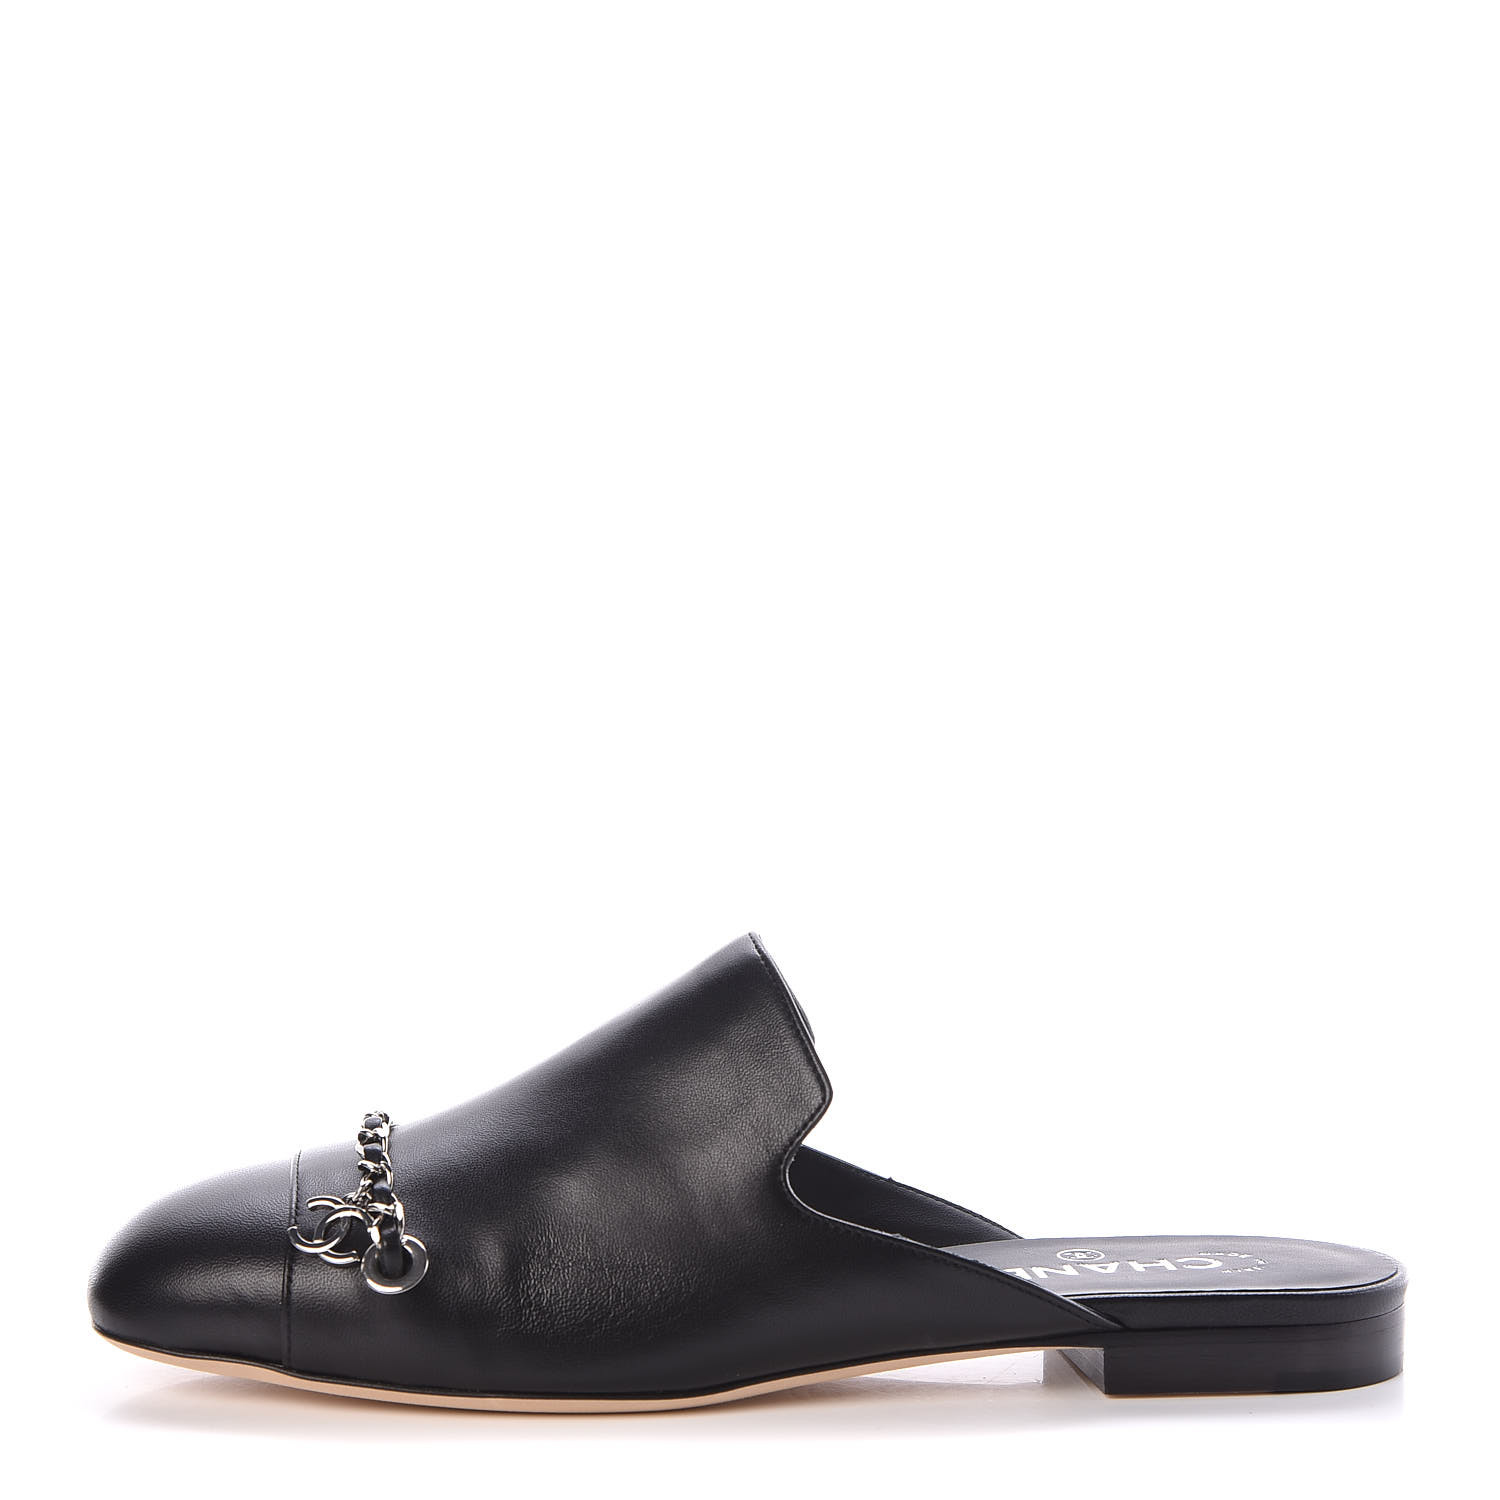 vivid and great in style beautiful design fashion style CHANEL Lambskin Chain CC Mules 39.5 Black